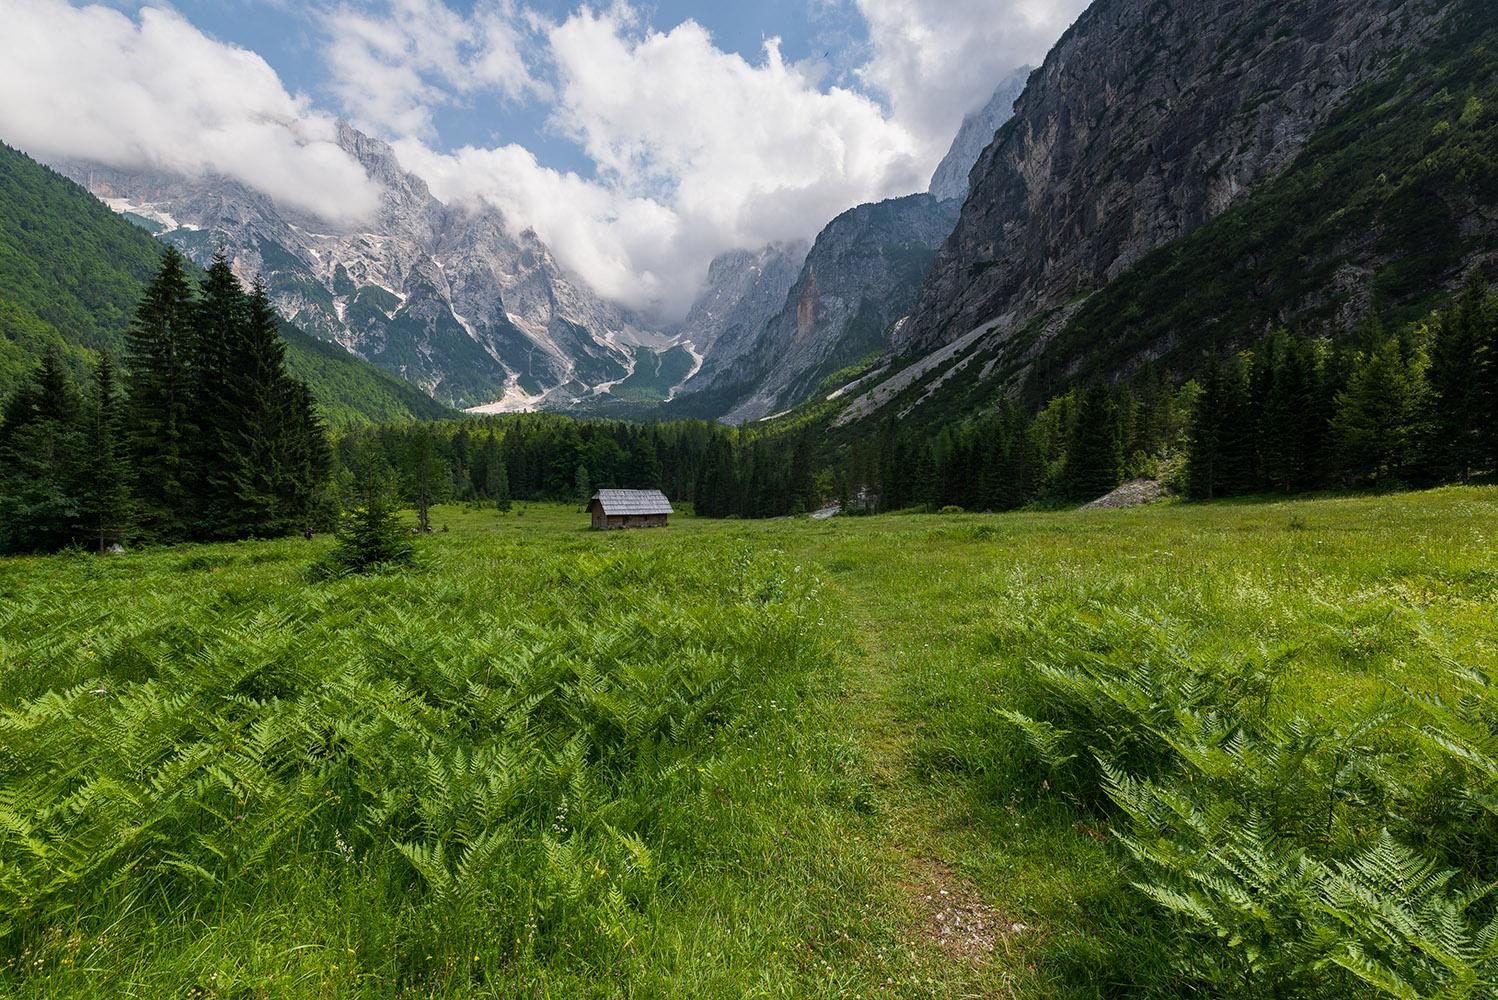 Landscape in Krnica valley example image 1